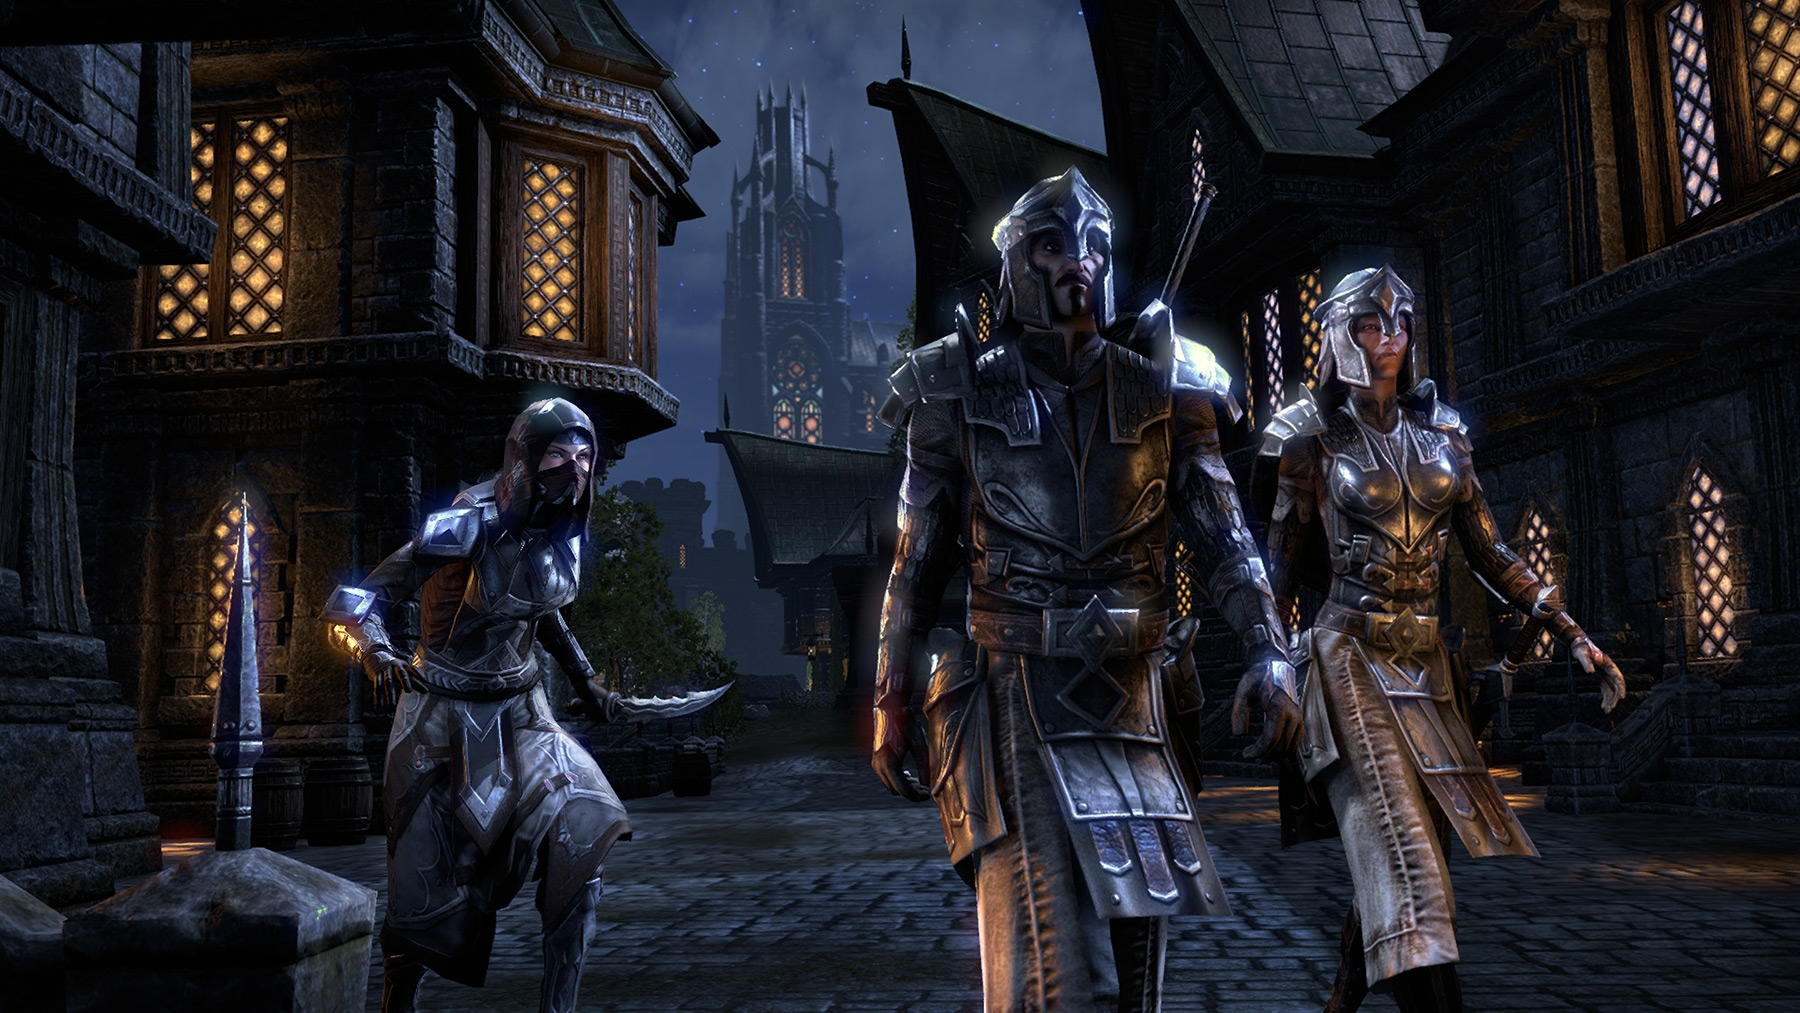 Eso Best Solo Class 2019 Ranking The Top 5 Best ESO Builds (2019 Edition) | GAMERS DECIDE